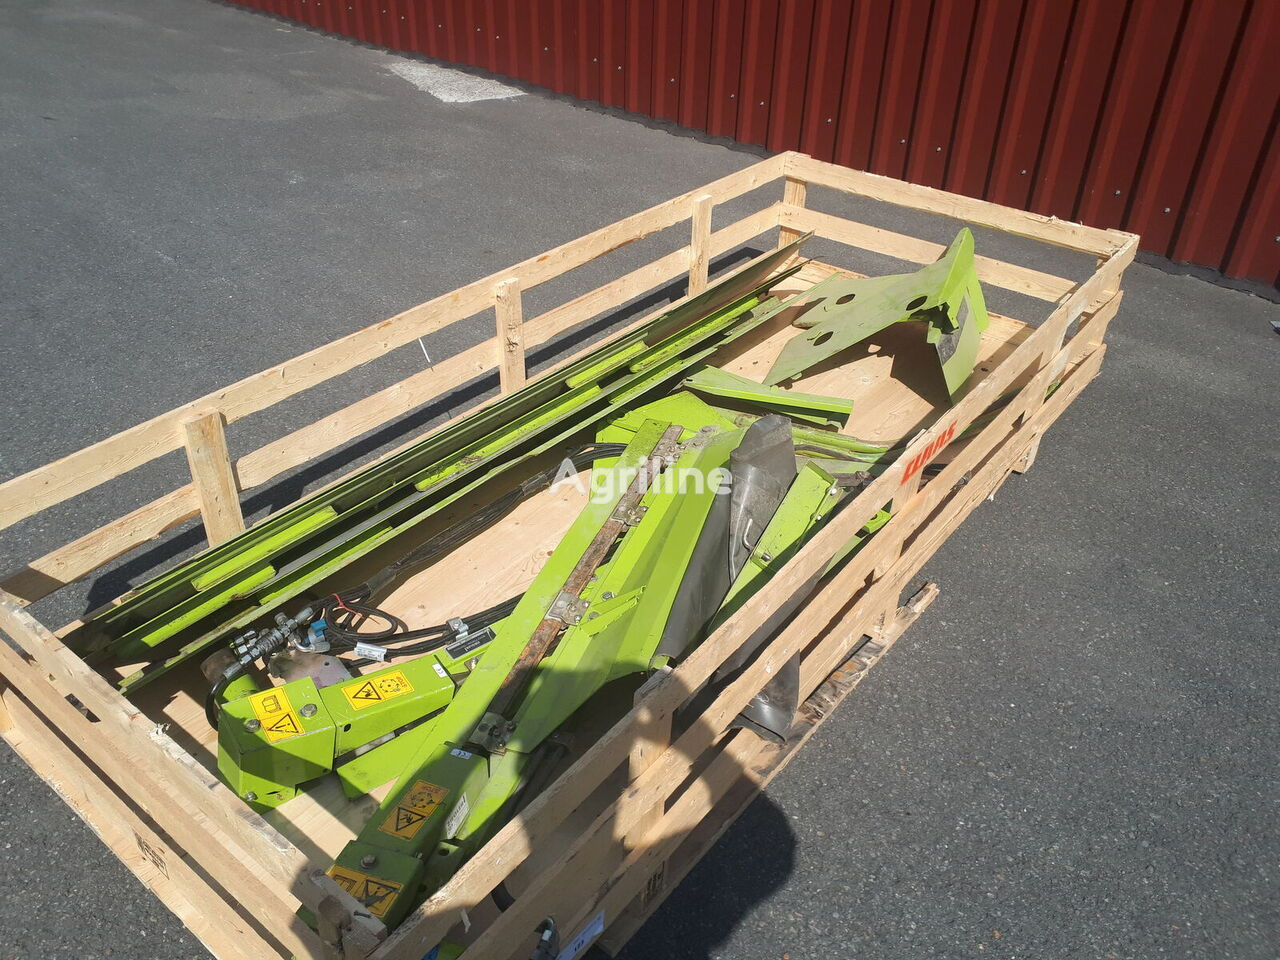 Rapskit  CLAAS other operating parts for CLAAS Vario 900 und Claas Vario 1050  reaper